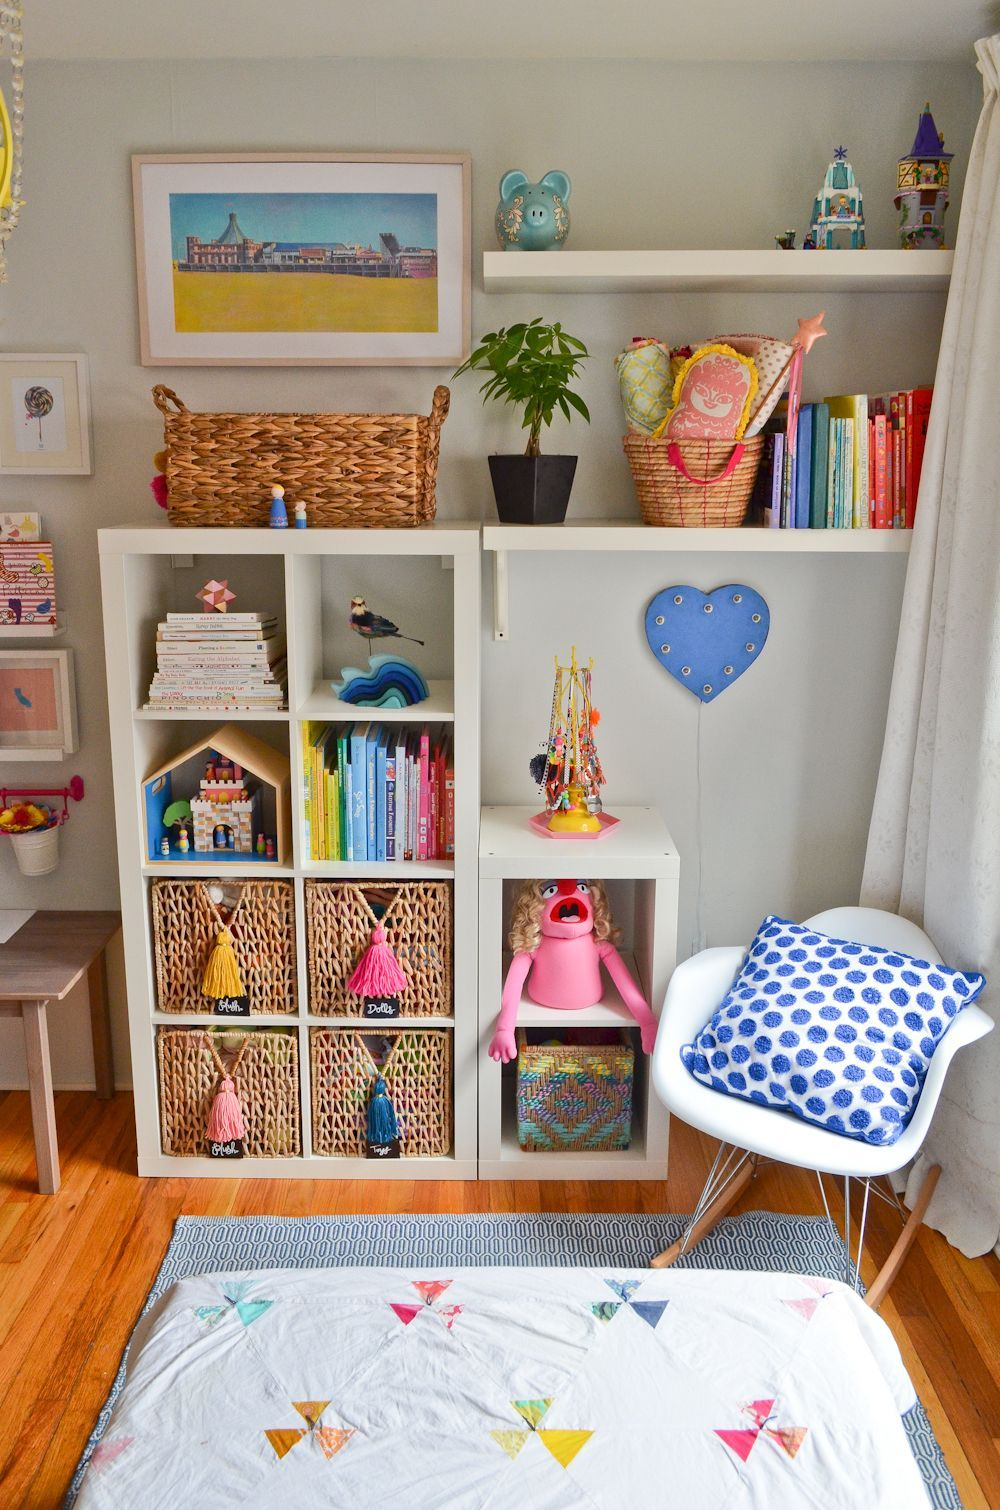 30 Best Playroom Ideas For Small And Large Spaces Girl Room Kids Bedroom Organization Playroom Design